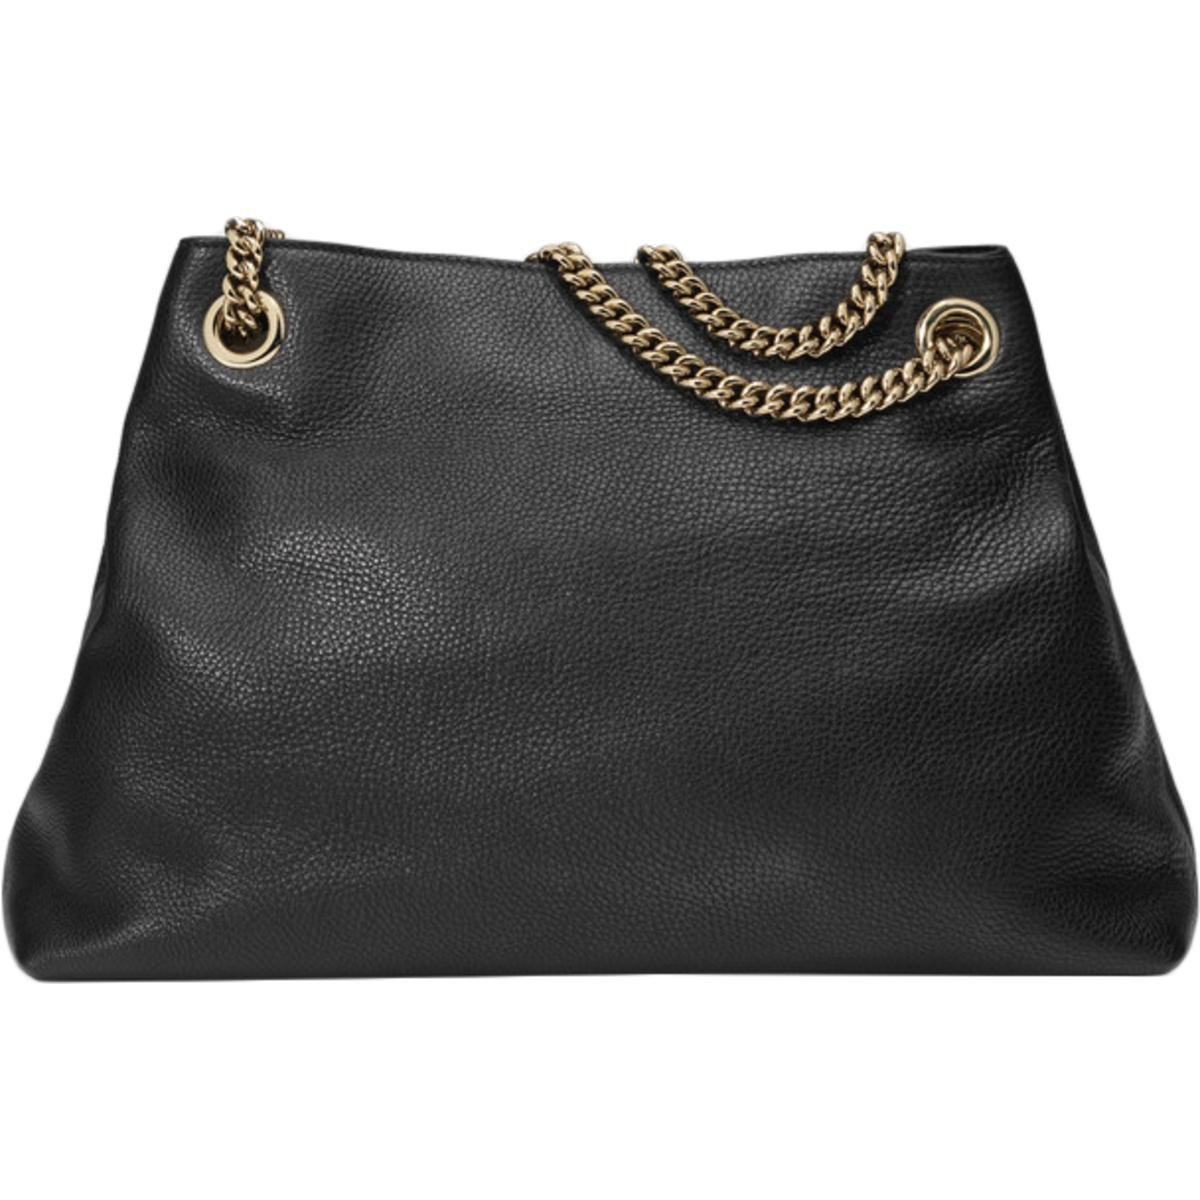 c846488e244 Amazon.com  Gucci Soho Large Leather Chain Shoulder Handbag Black BHFO  5480  Clothing